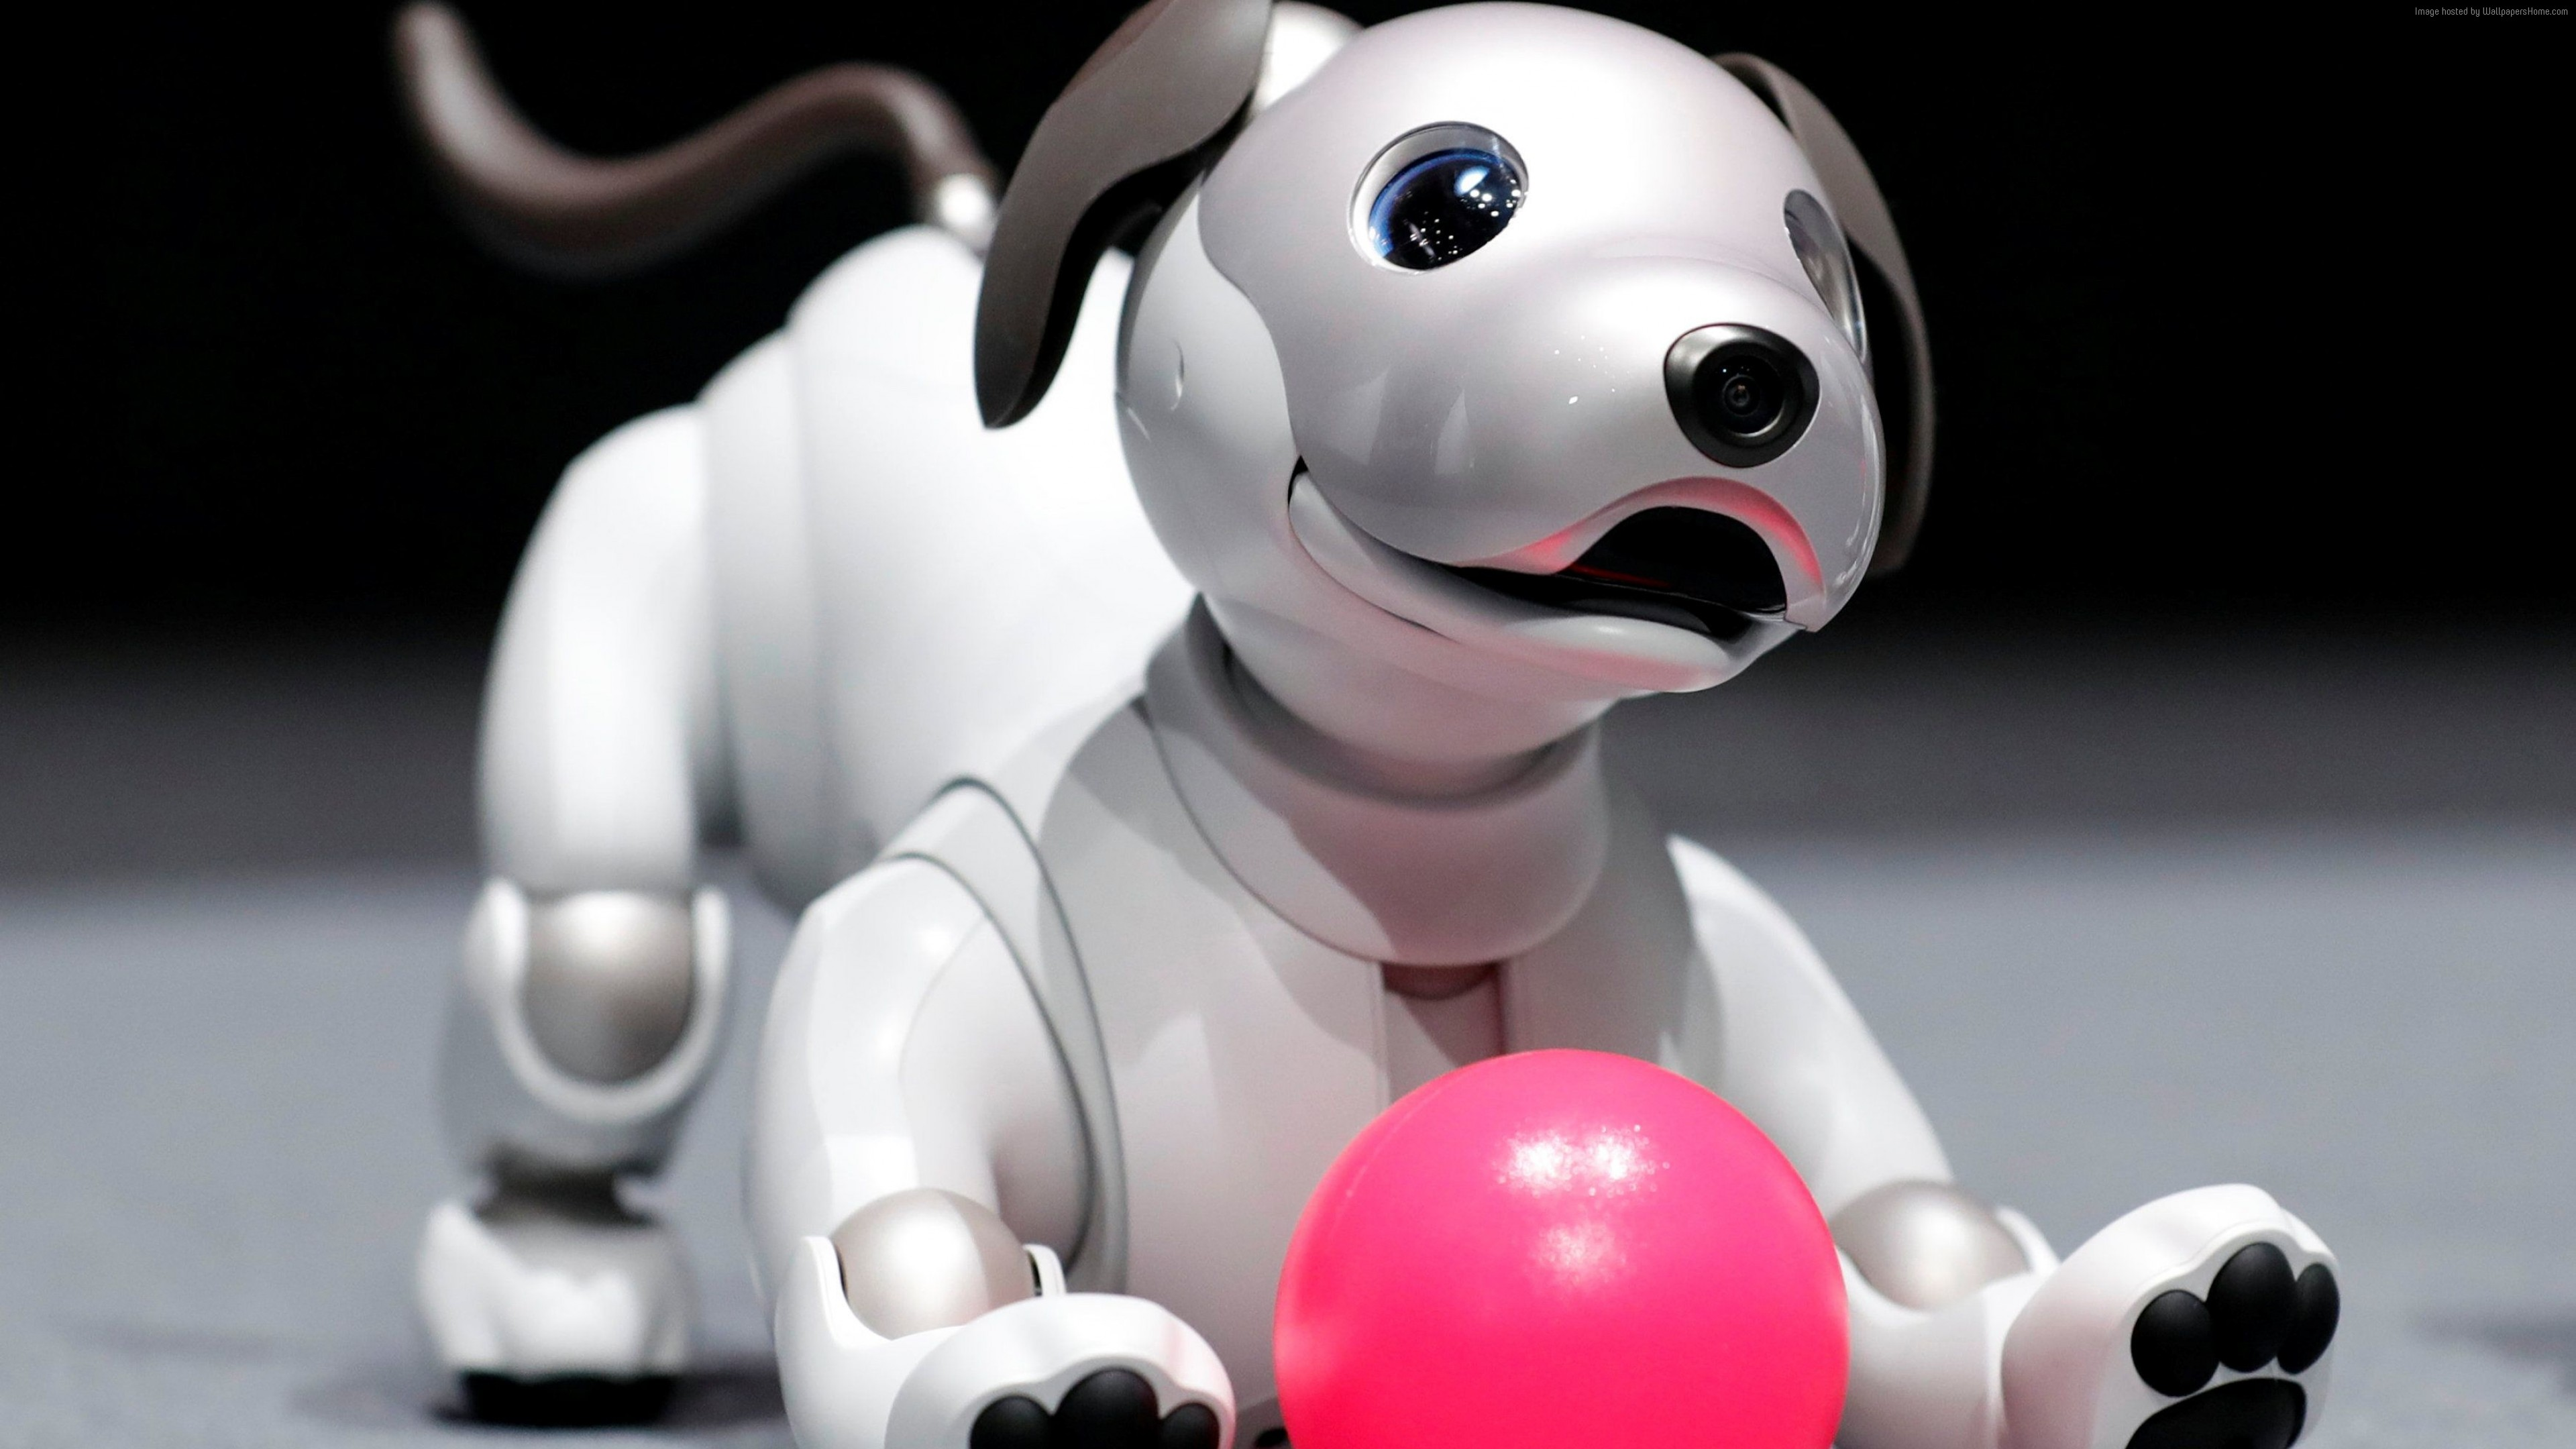 Wallpaper Sony Aibo, robot, dog, 4k, Hi-Tech